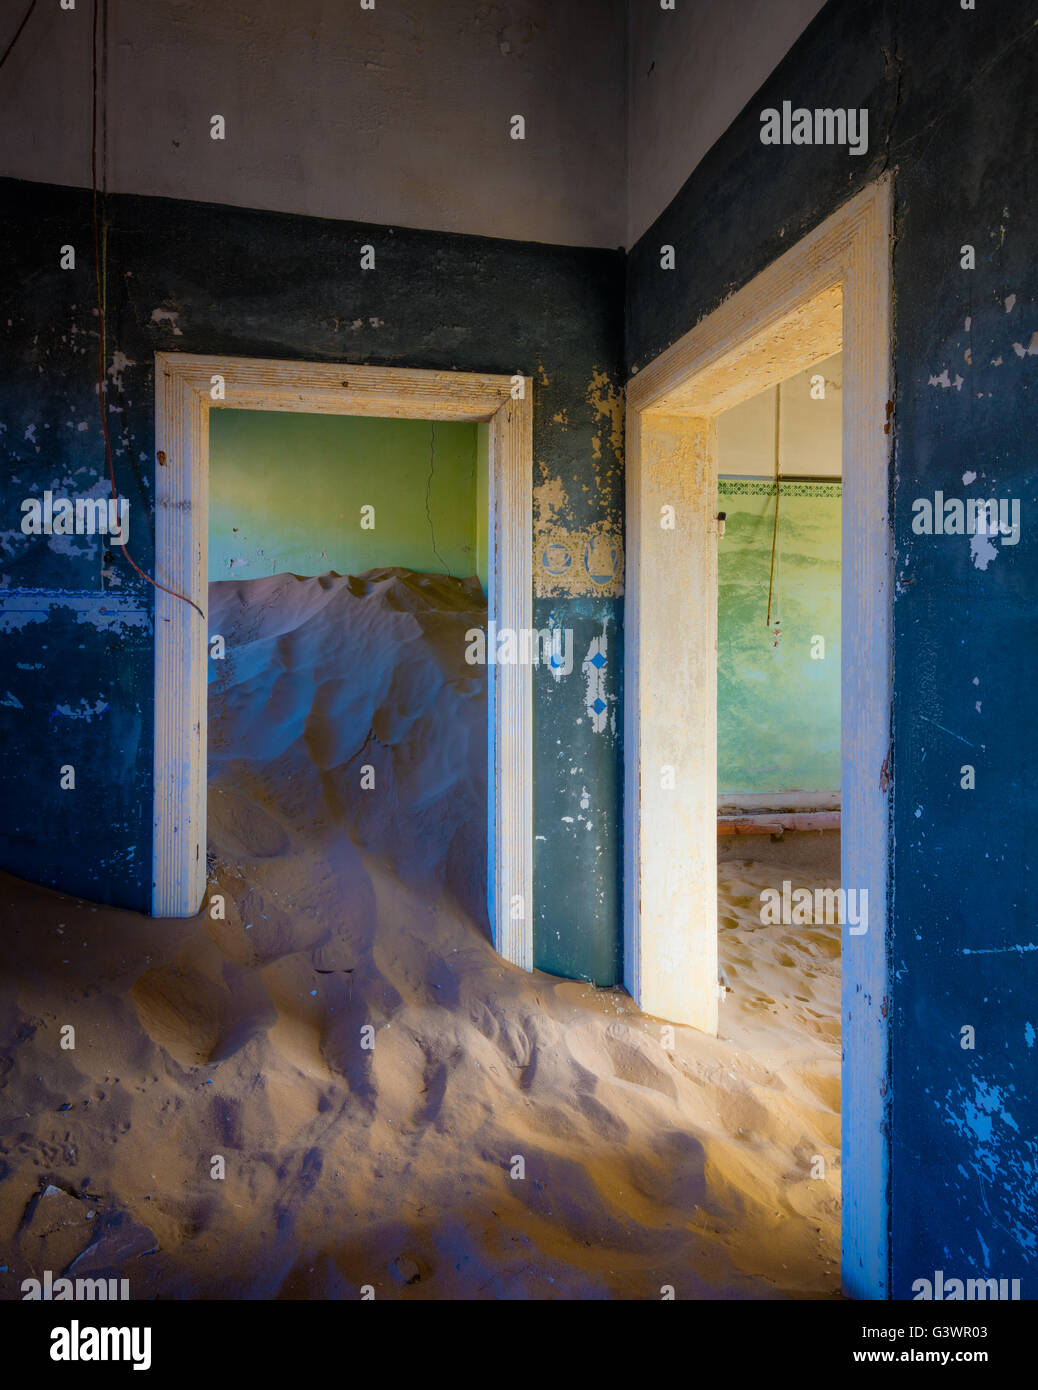 Kolmanskop (Afrikaans for Coleman's hill, German: Kolmannskuppe) is a ghost town in the Namib desert in southern - Stock Image